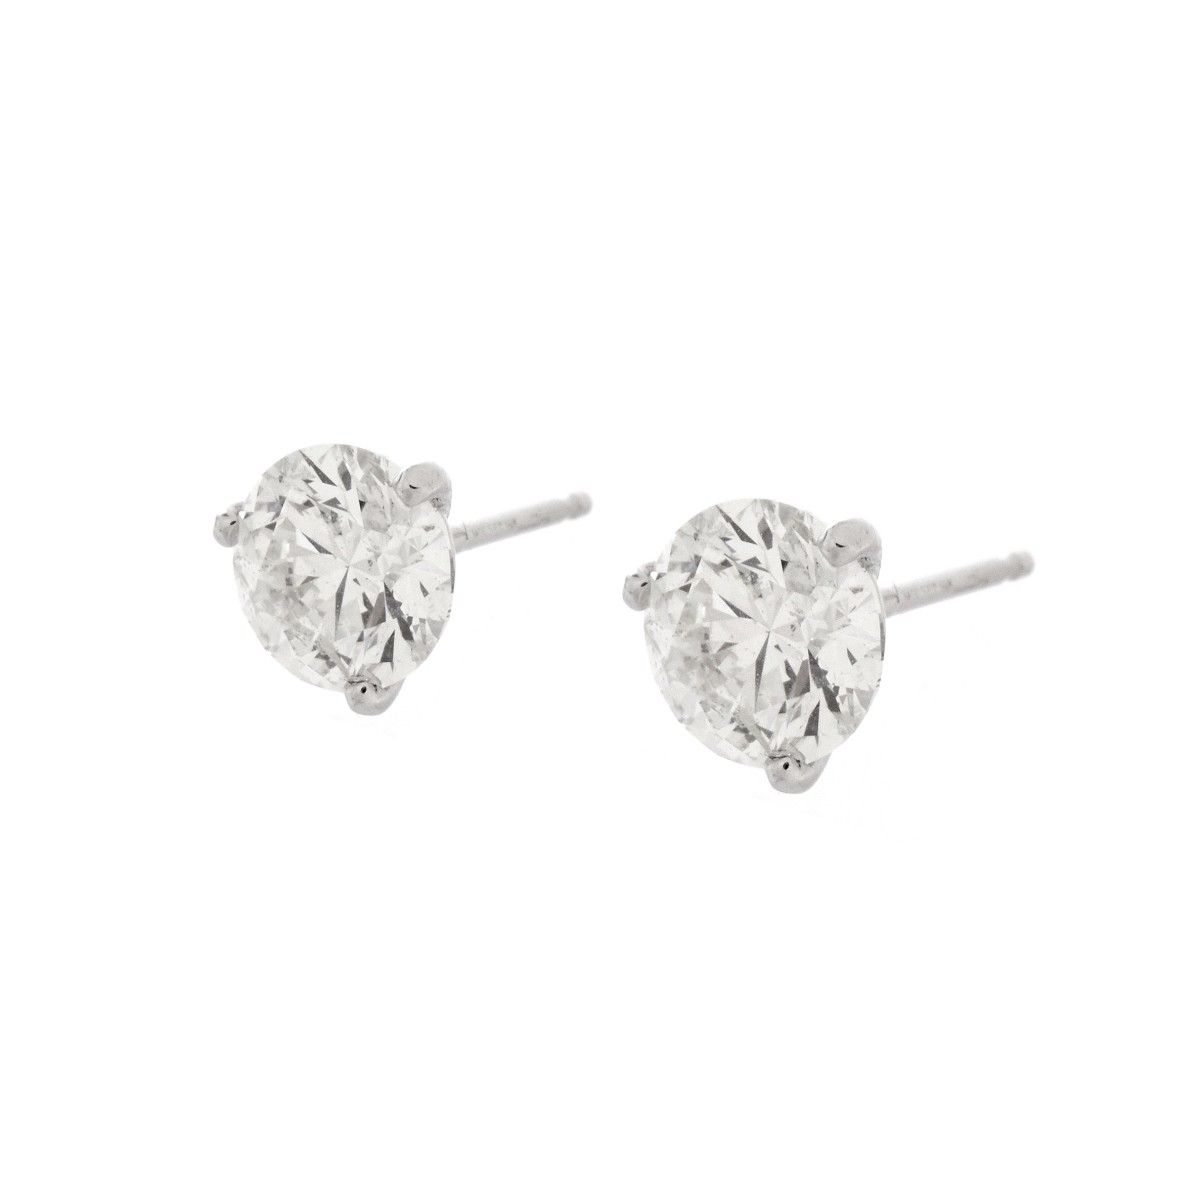 2.01 Carat Diamond Ear Studs